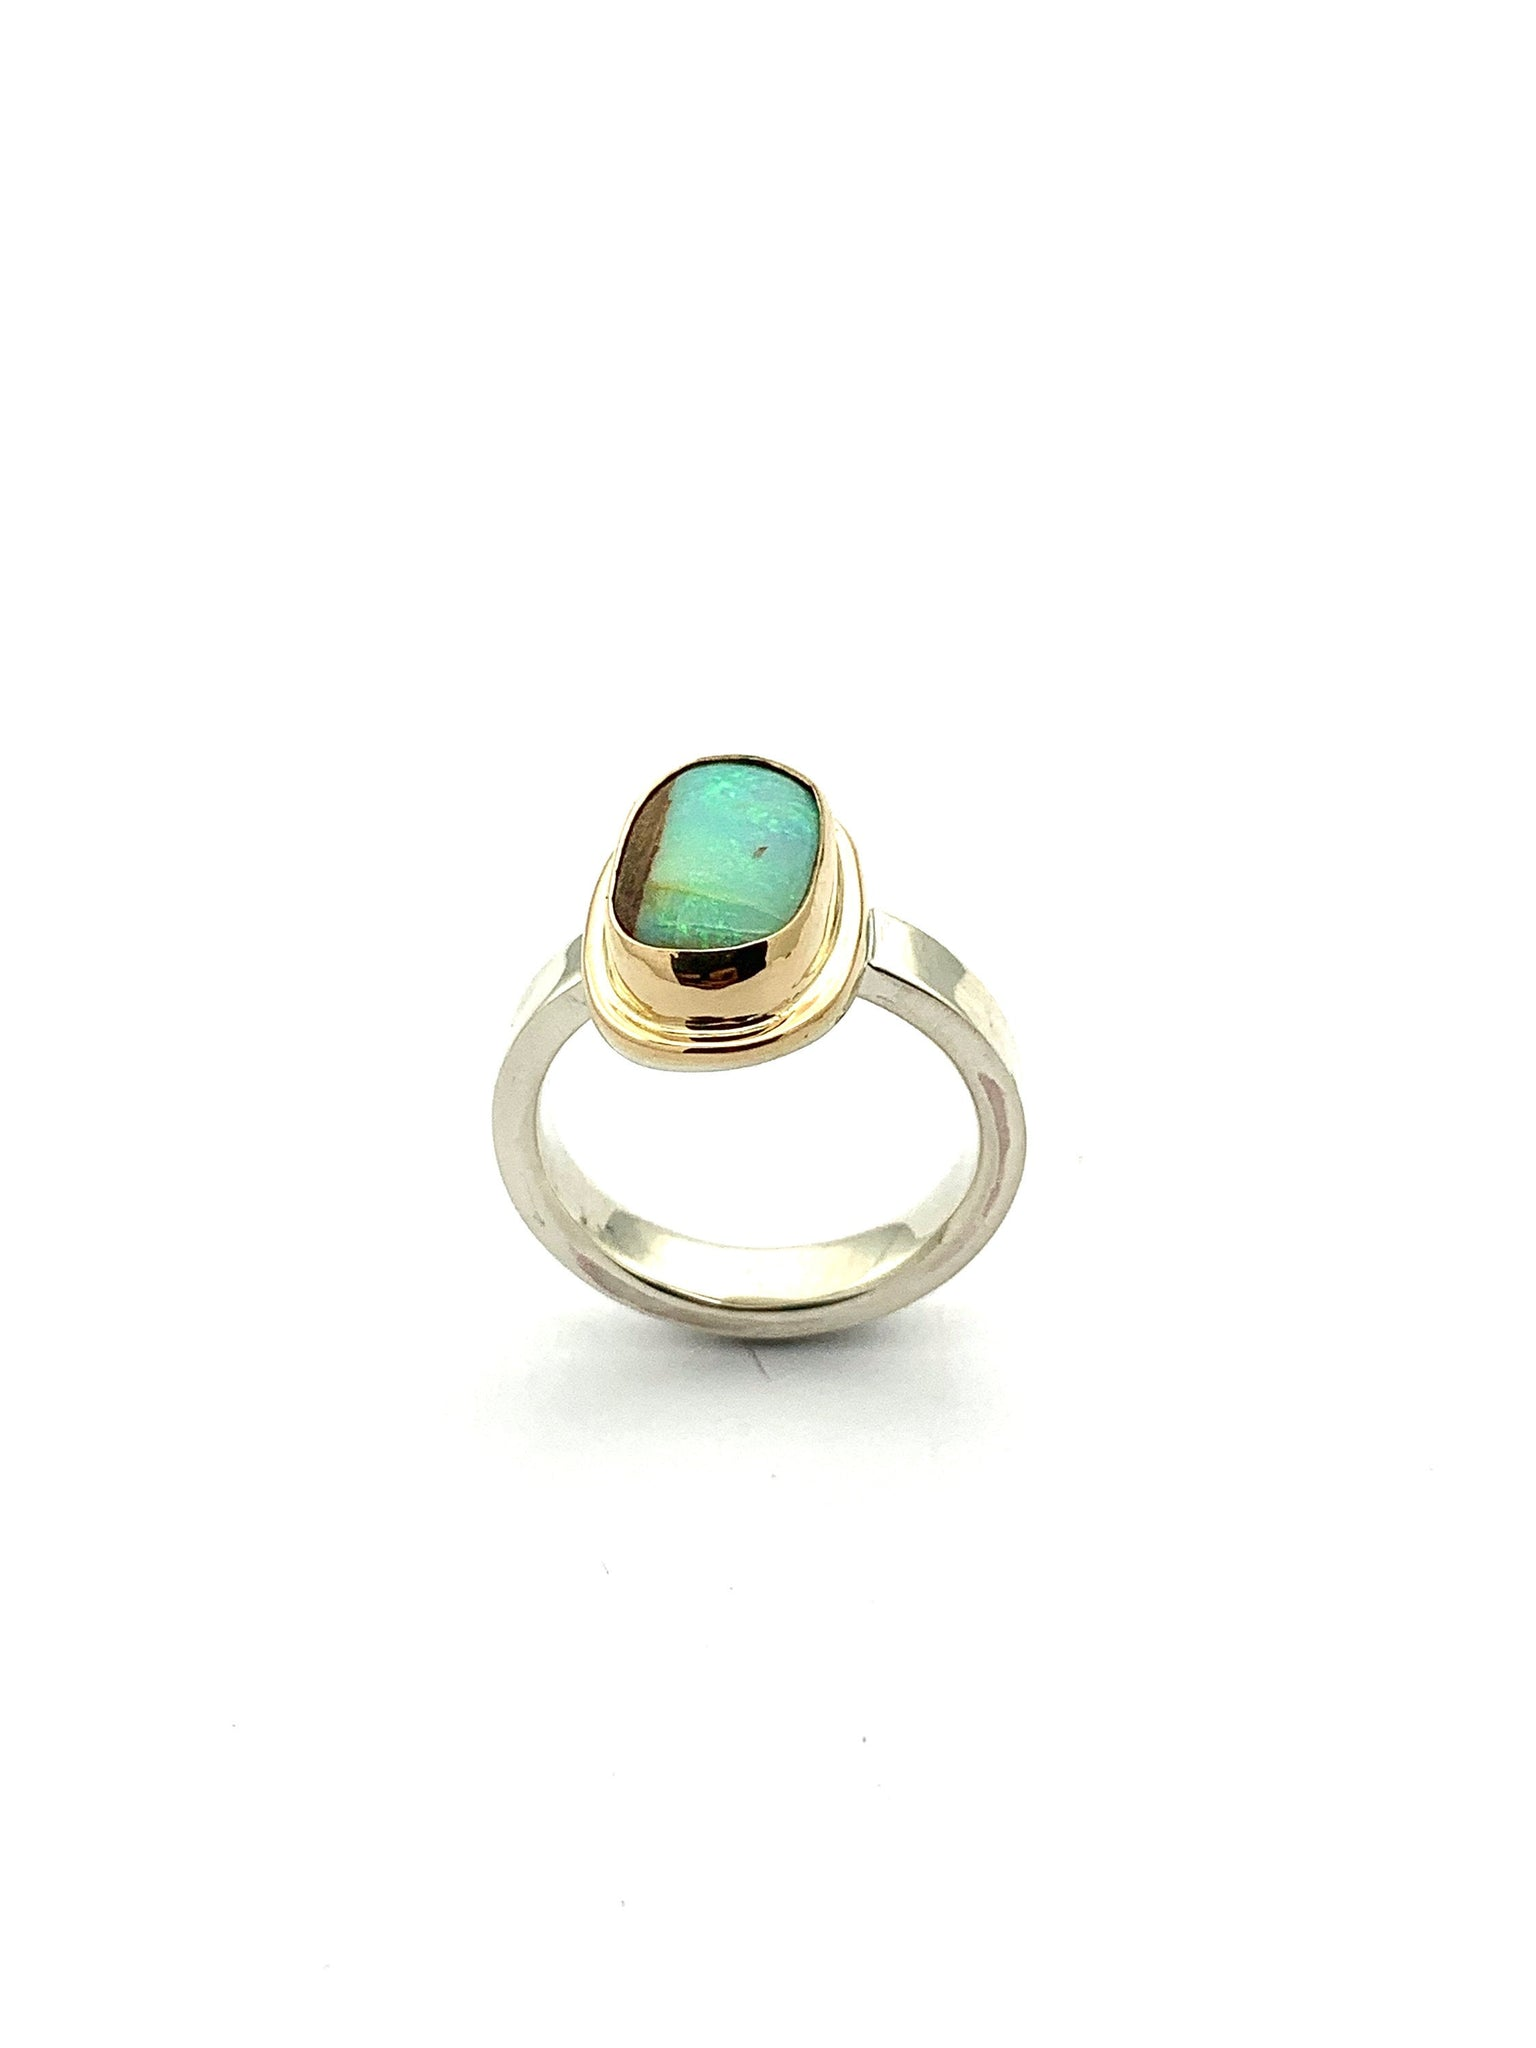 Australian Crystal Pipe Opal Ring, Opal Ring in 14k gold and Silver, Statement Opal Ring